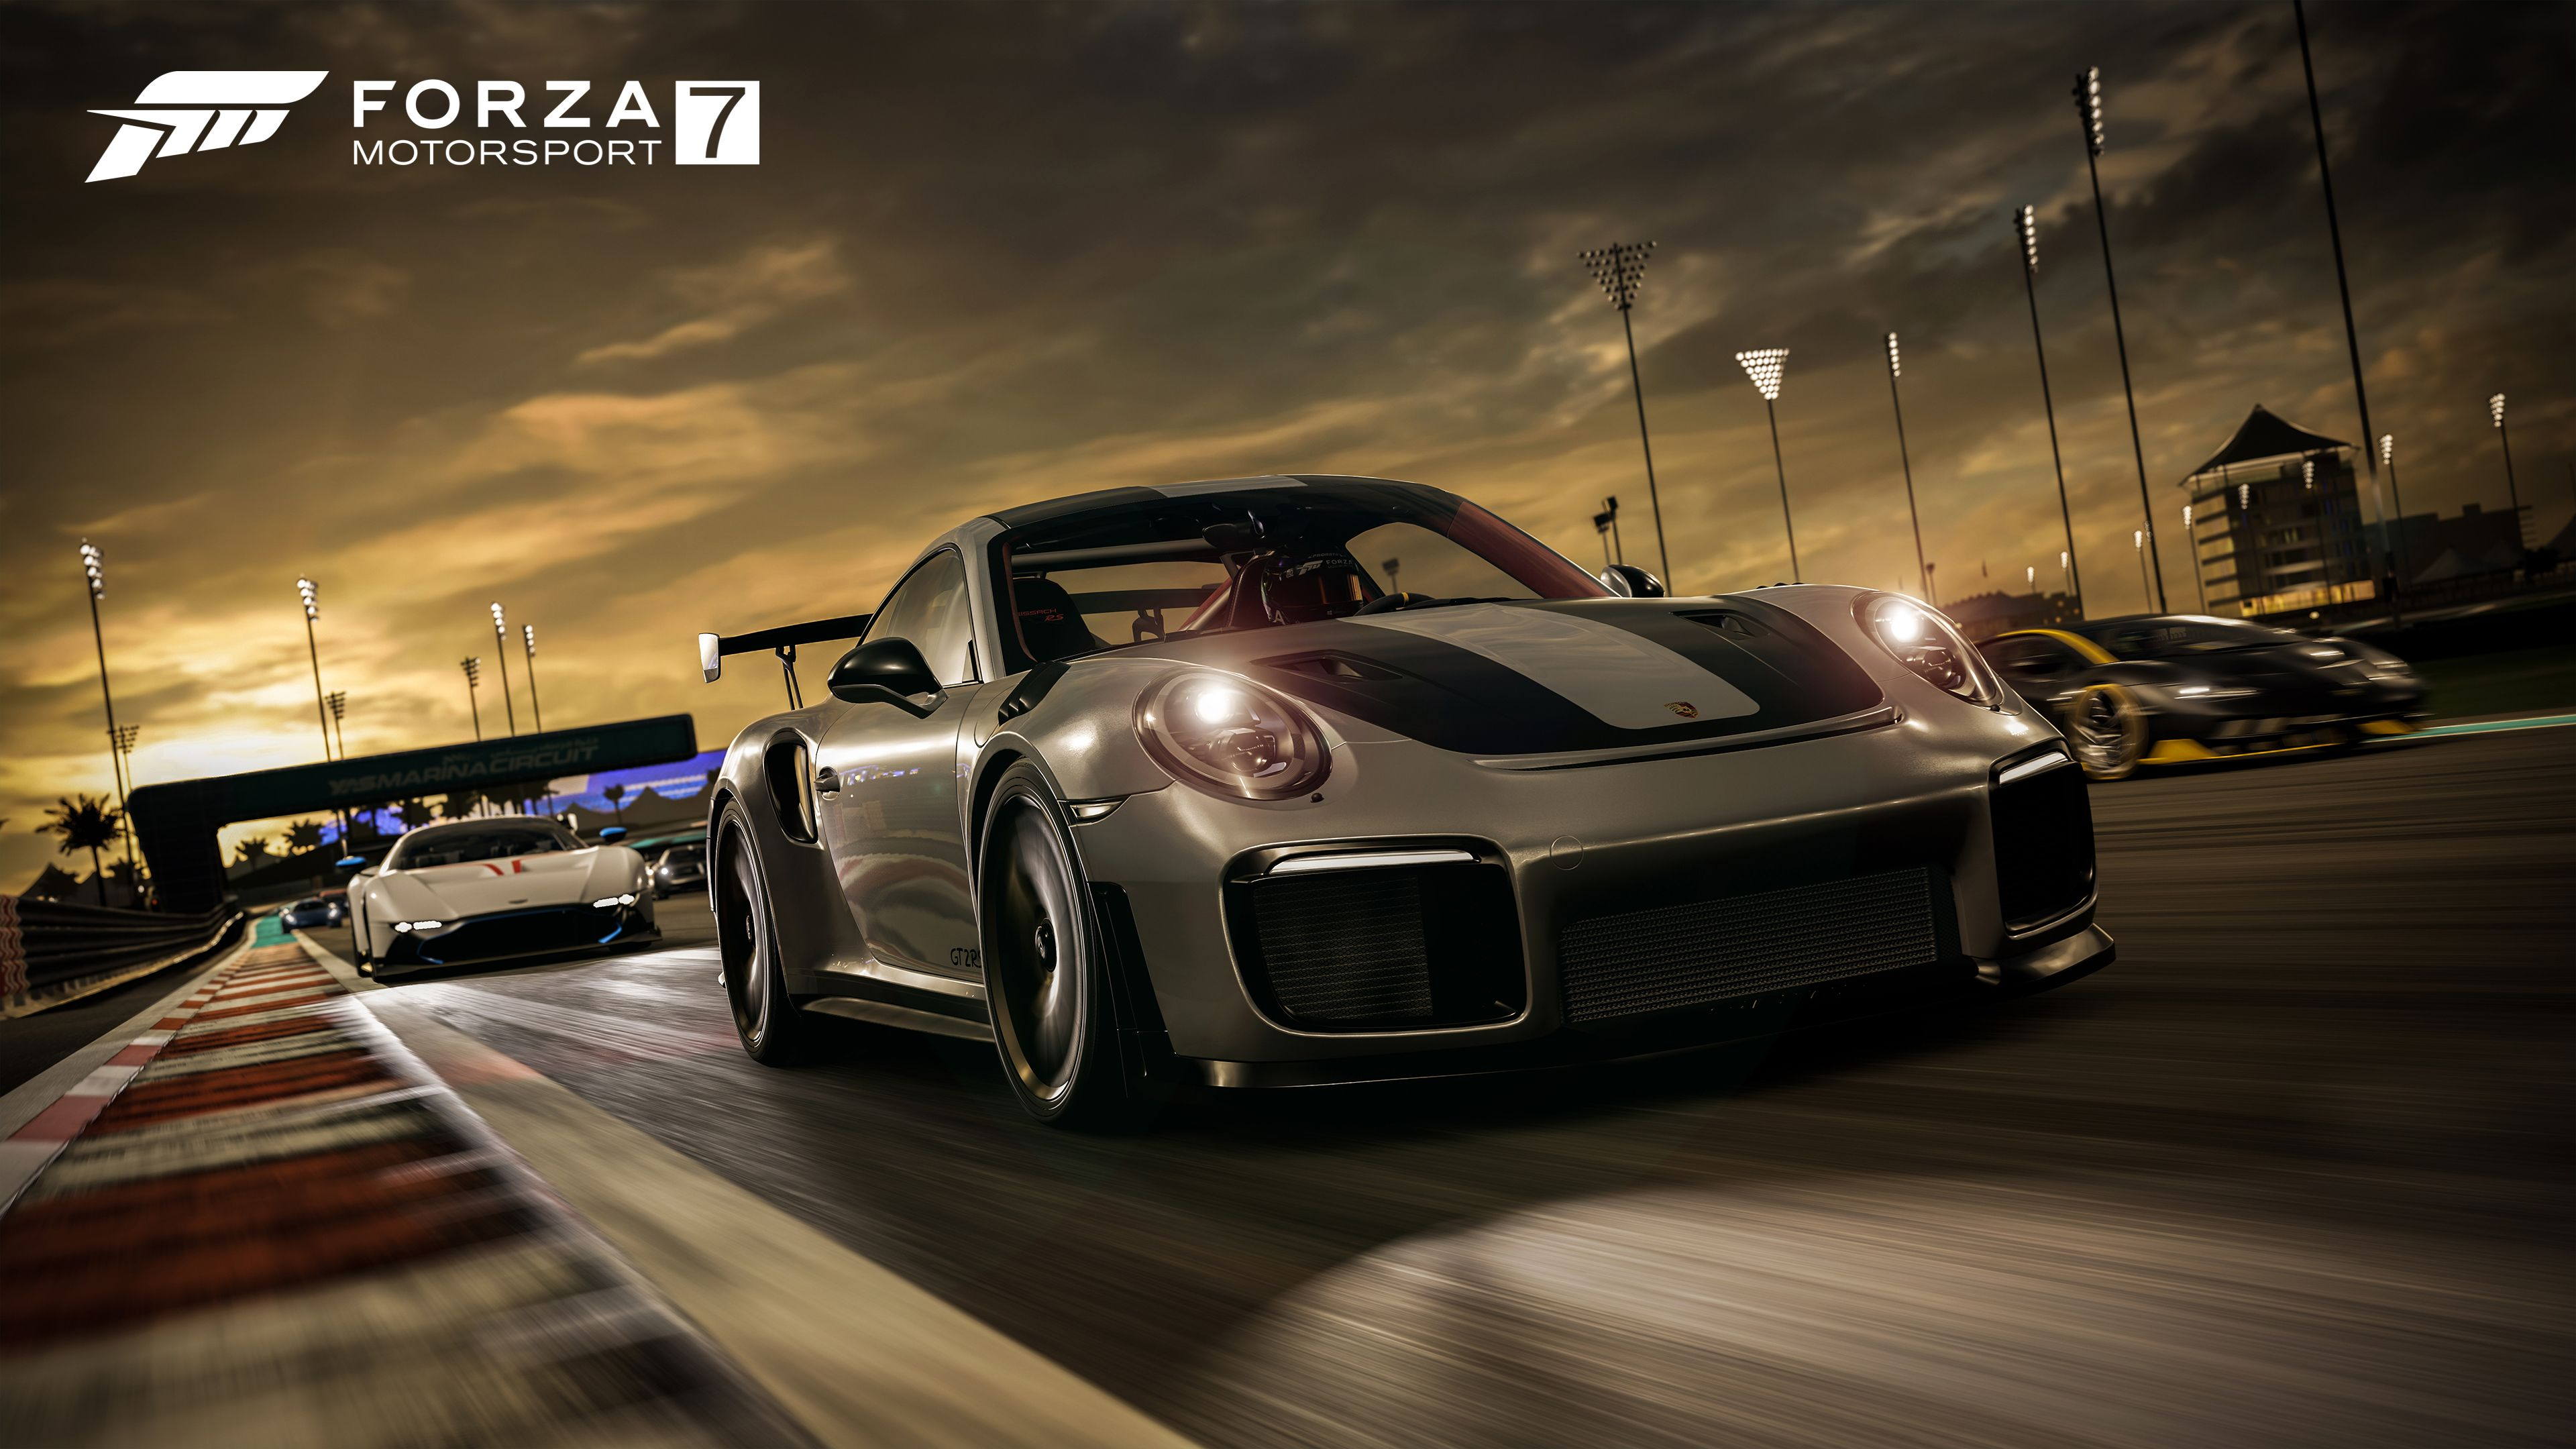 Forza Motorsport 7 Gets Gorgeous 4K Screenshots Special